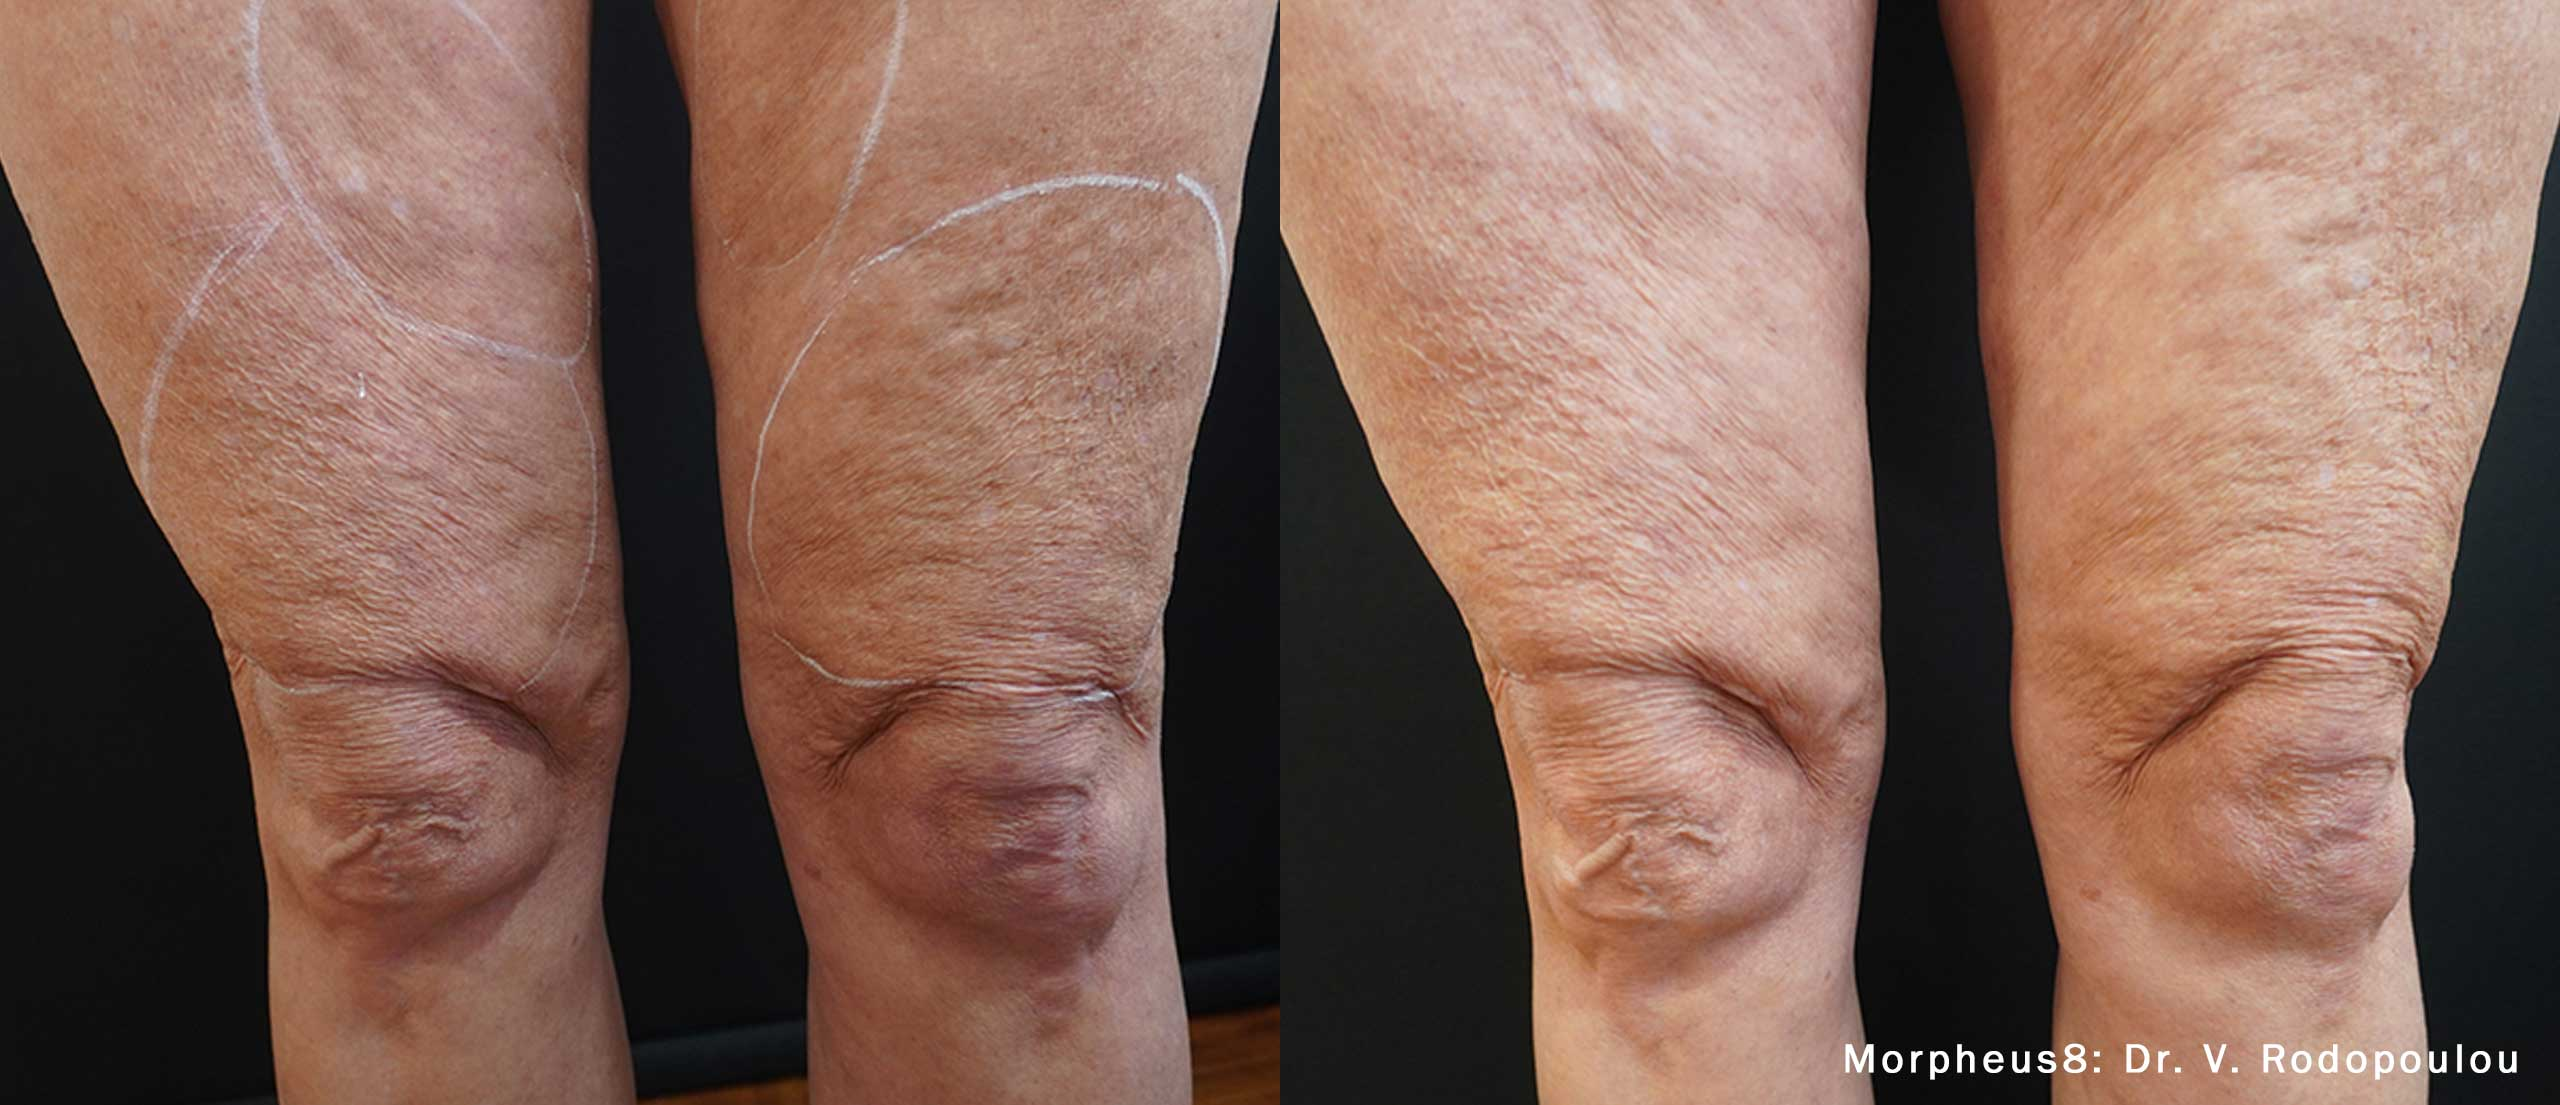 Morpheus8 treatment results on NYC patient